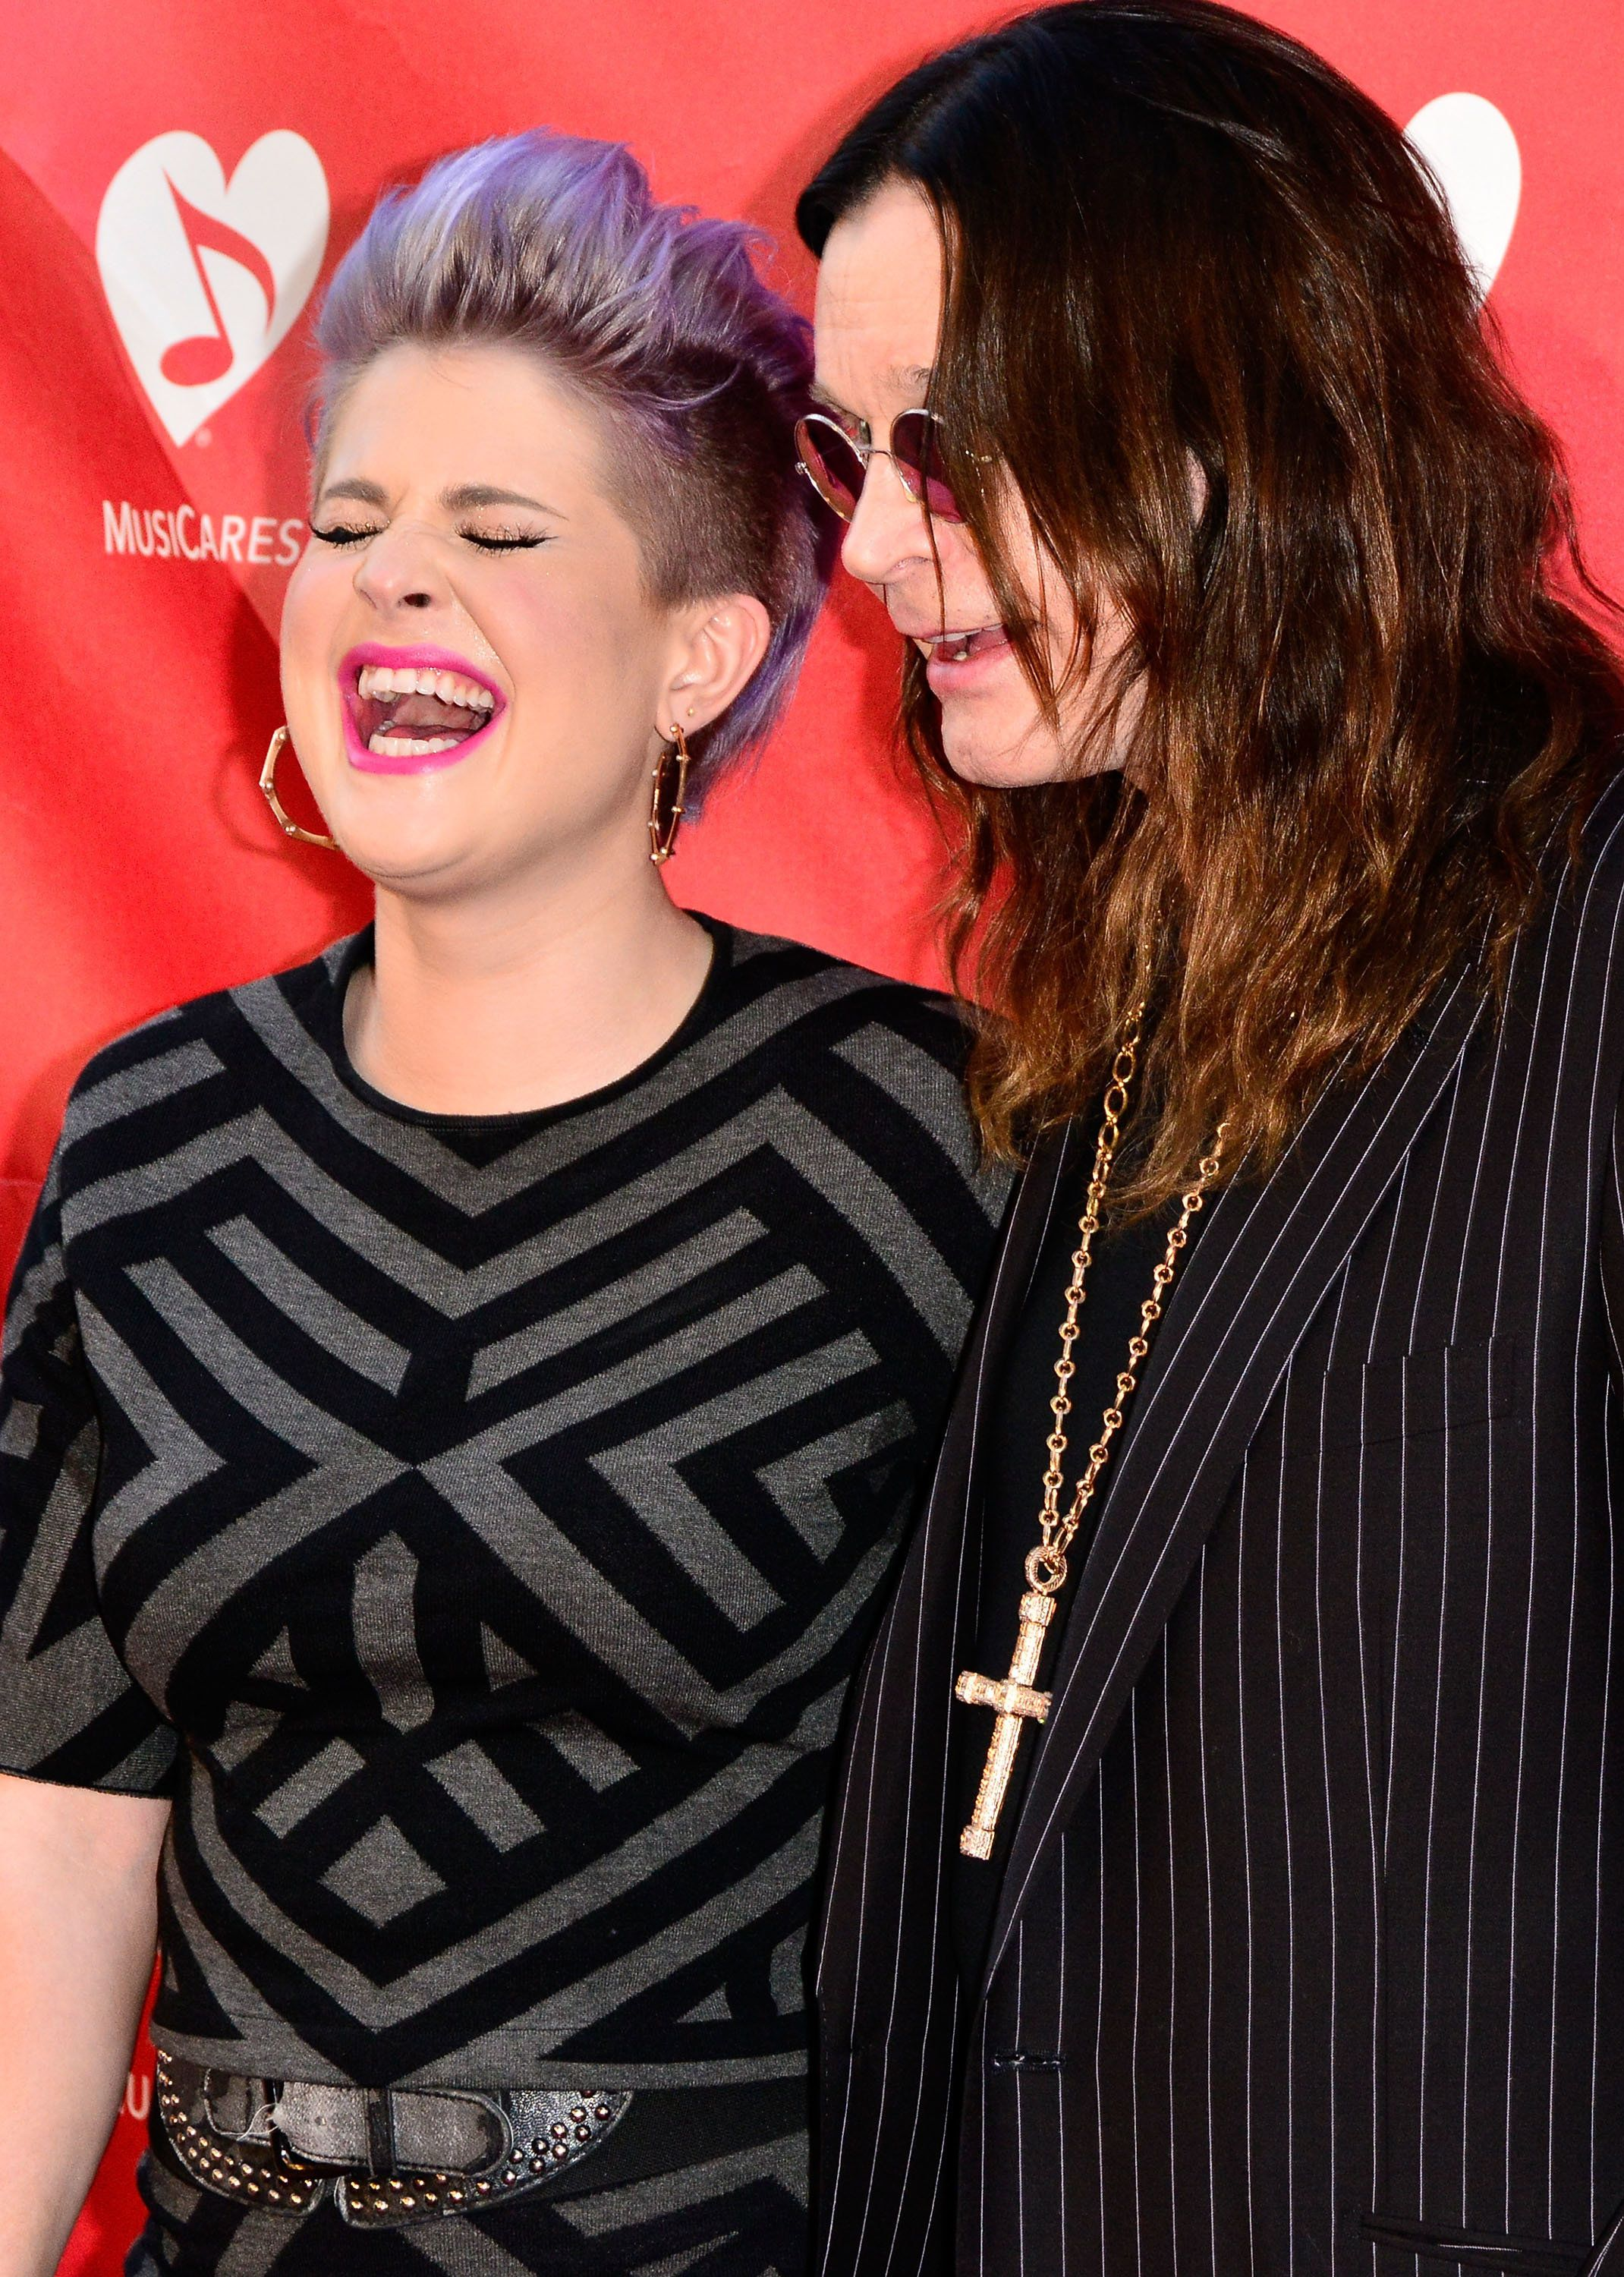 LOS ANGELES, CA - MAY 12:  Kelly Osbourne and Ozzy Osbourne arrive at the 2014 MusiCares MAP Fund Benefit Concert at Club Nokia on May 12, 2014 in Los Angeles, California.  (Photo by Jerod Harris/WireImage)